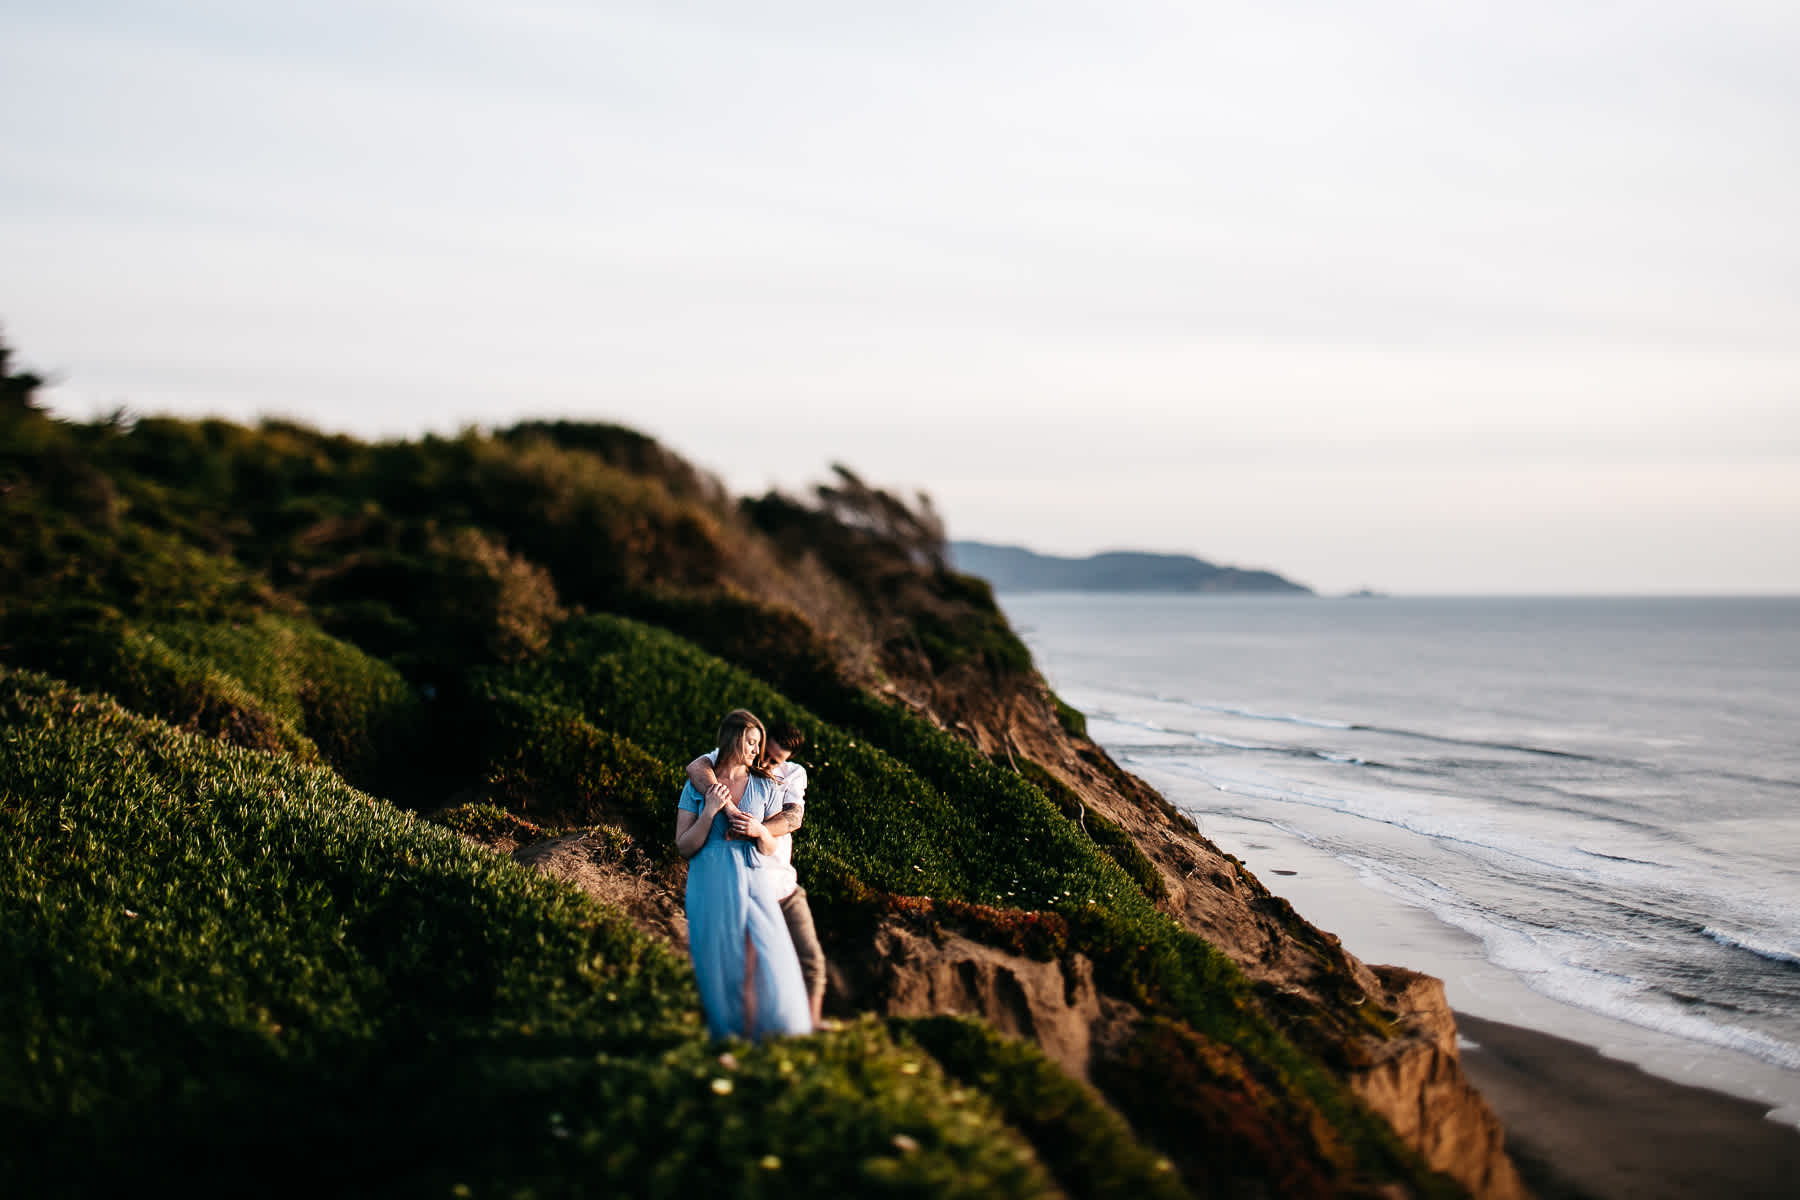 fort-funston-engagement-session-sunset-fun-beach-session-32